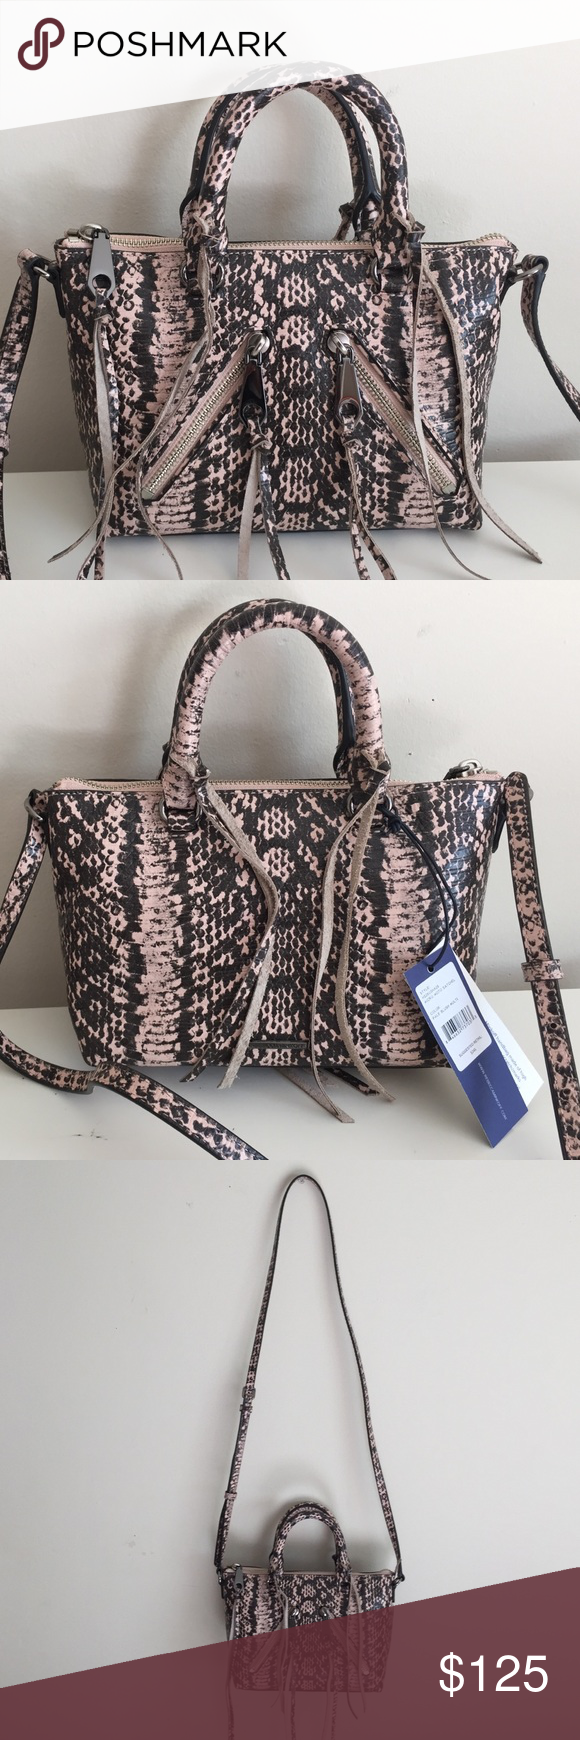 """NWT Auth Rebecca Minkoff Micro Moto Blush Python NWT authentic Rebecca Minkoff Micro Moto Satchel in Pale Blush Multi / gunmetal hardware / adjustable crossbody strap / top zip closure / two exterior zip pockets / three interior slip pockets / one interior zip pocket / 8"""" long x 6"""" high x 4"""" deep / 3.5"""" handle drop / 22"""" strap drop / extra tassel, care card and original dust bag included / reasonable offers welcome Rebecca Minkoff Bags Crossbody Bags"""